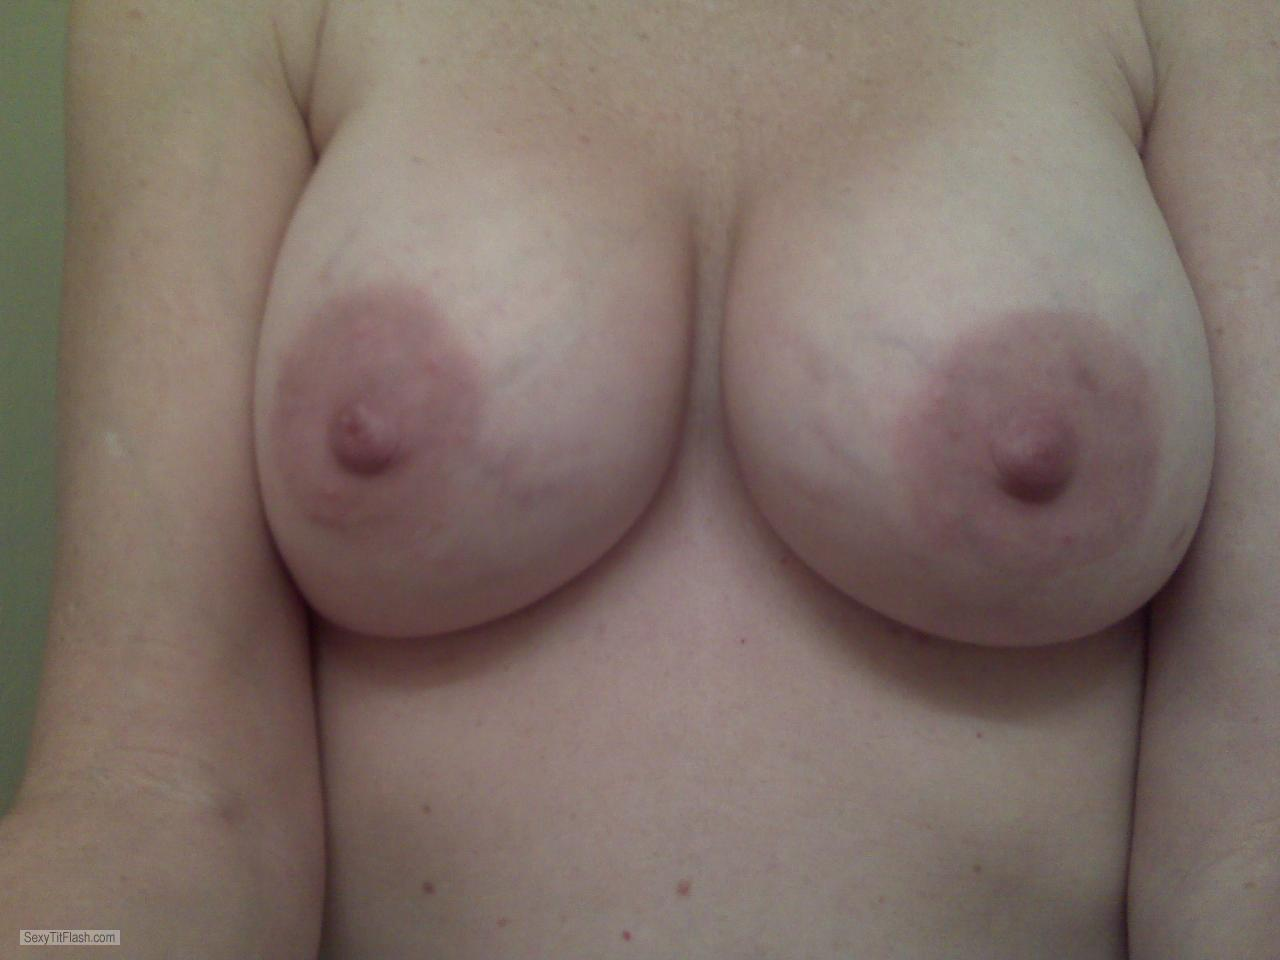 Tit Flash: My Medium Tits (Selfie) - Roxymilf from United States